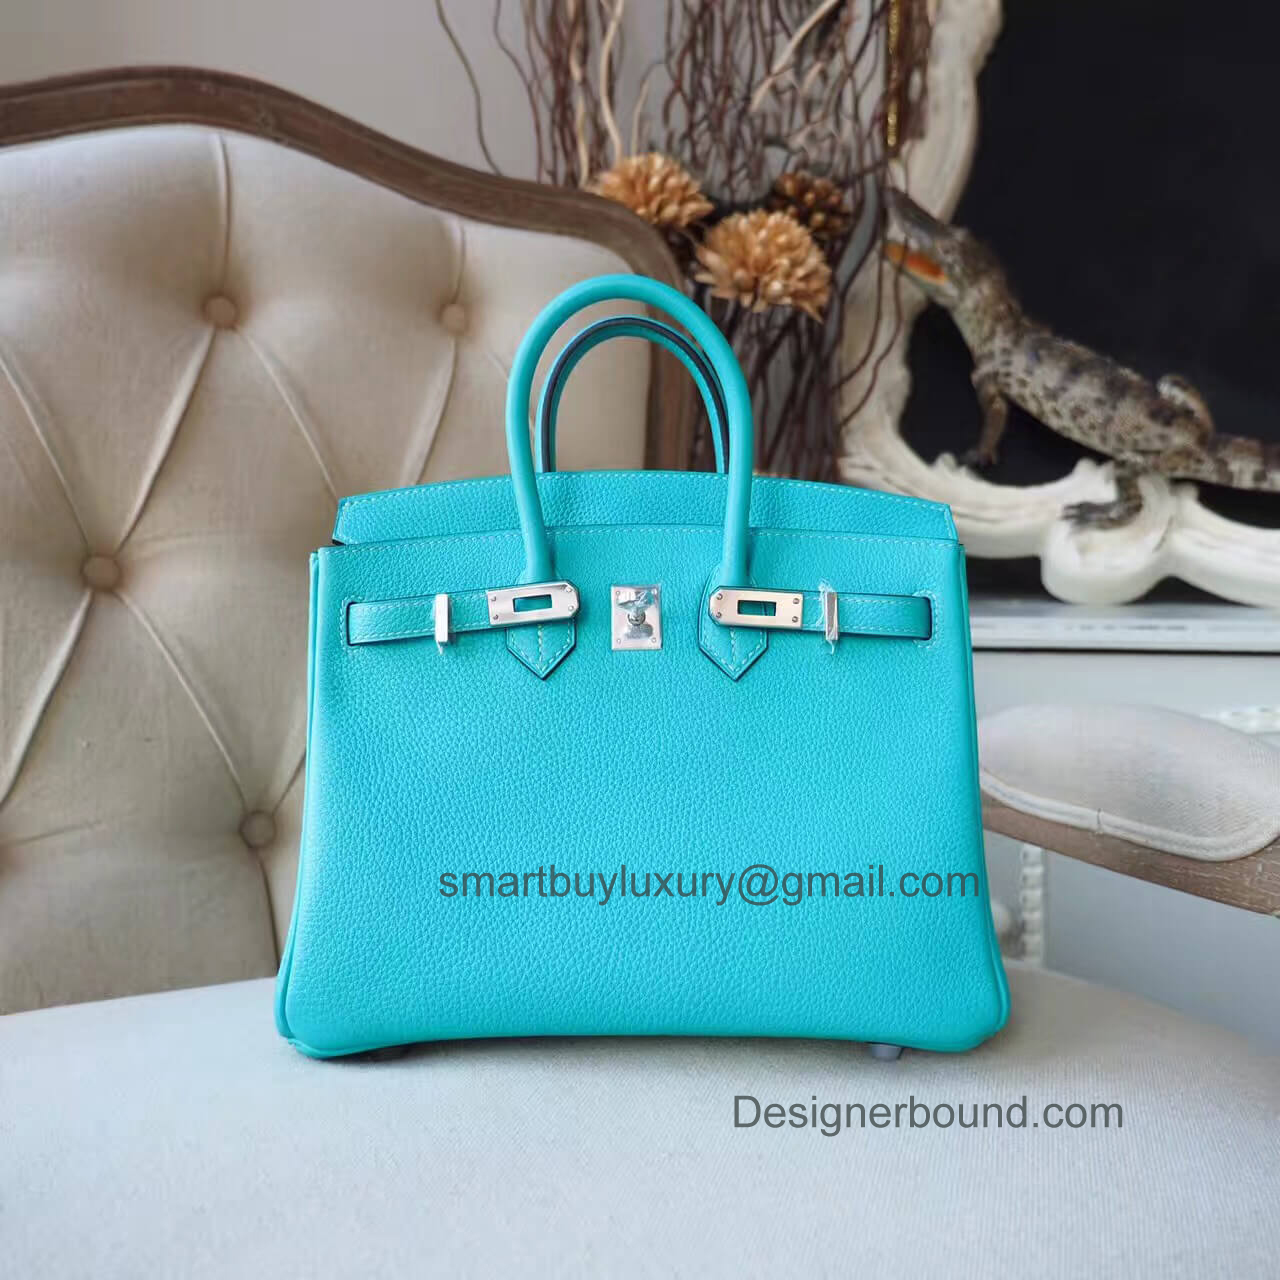 Hermes Birkin 25 Bag in 7v Lagon Togo PHW